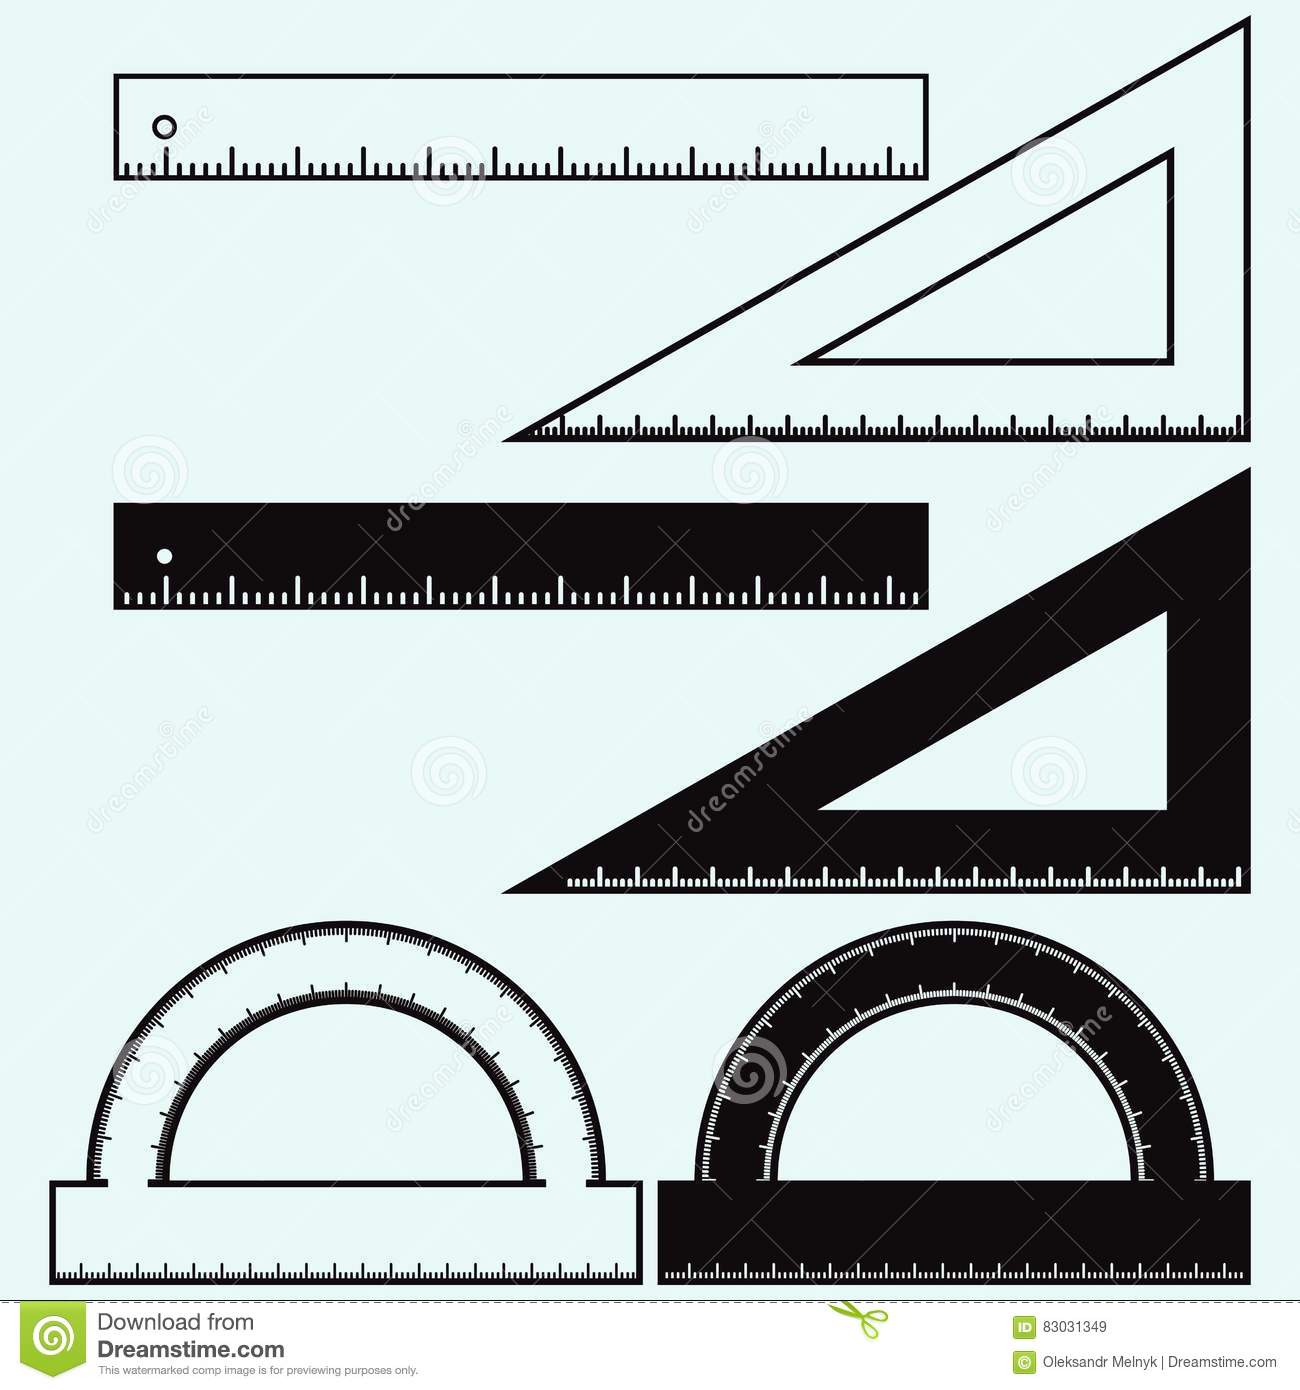 Drawing human ear royalty free stock photography image 25570937 - Wooden Rulers And Triangles Set Royalty Free Stock Images